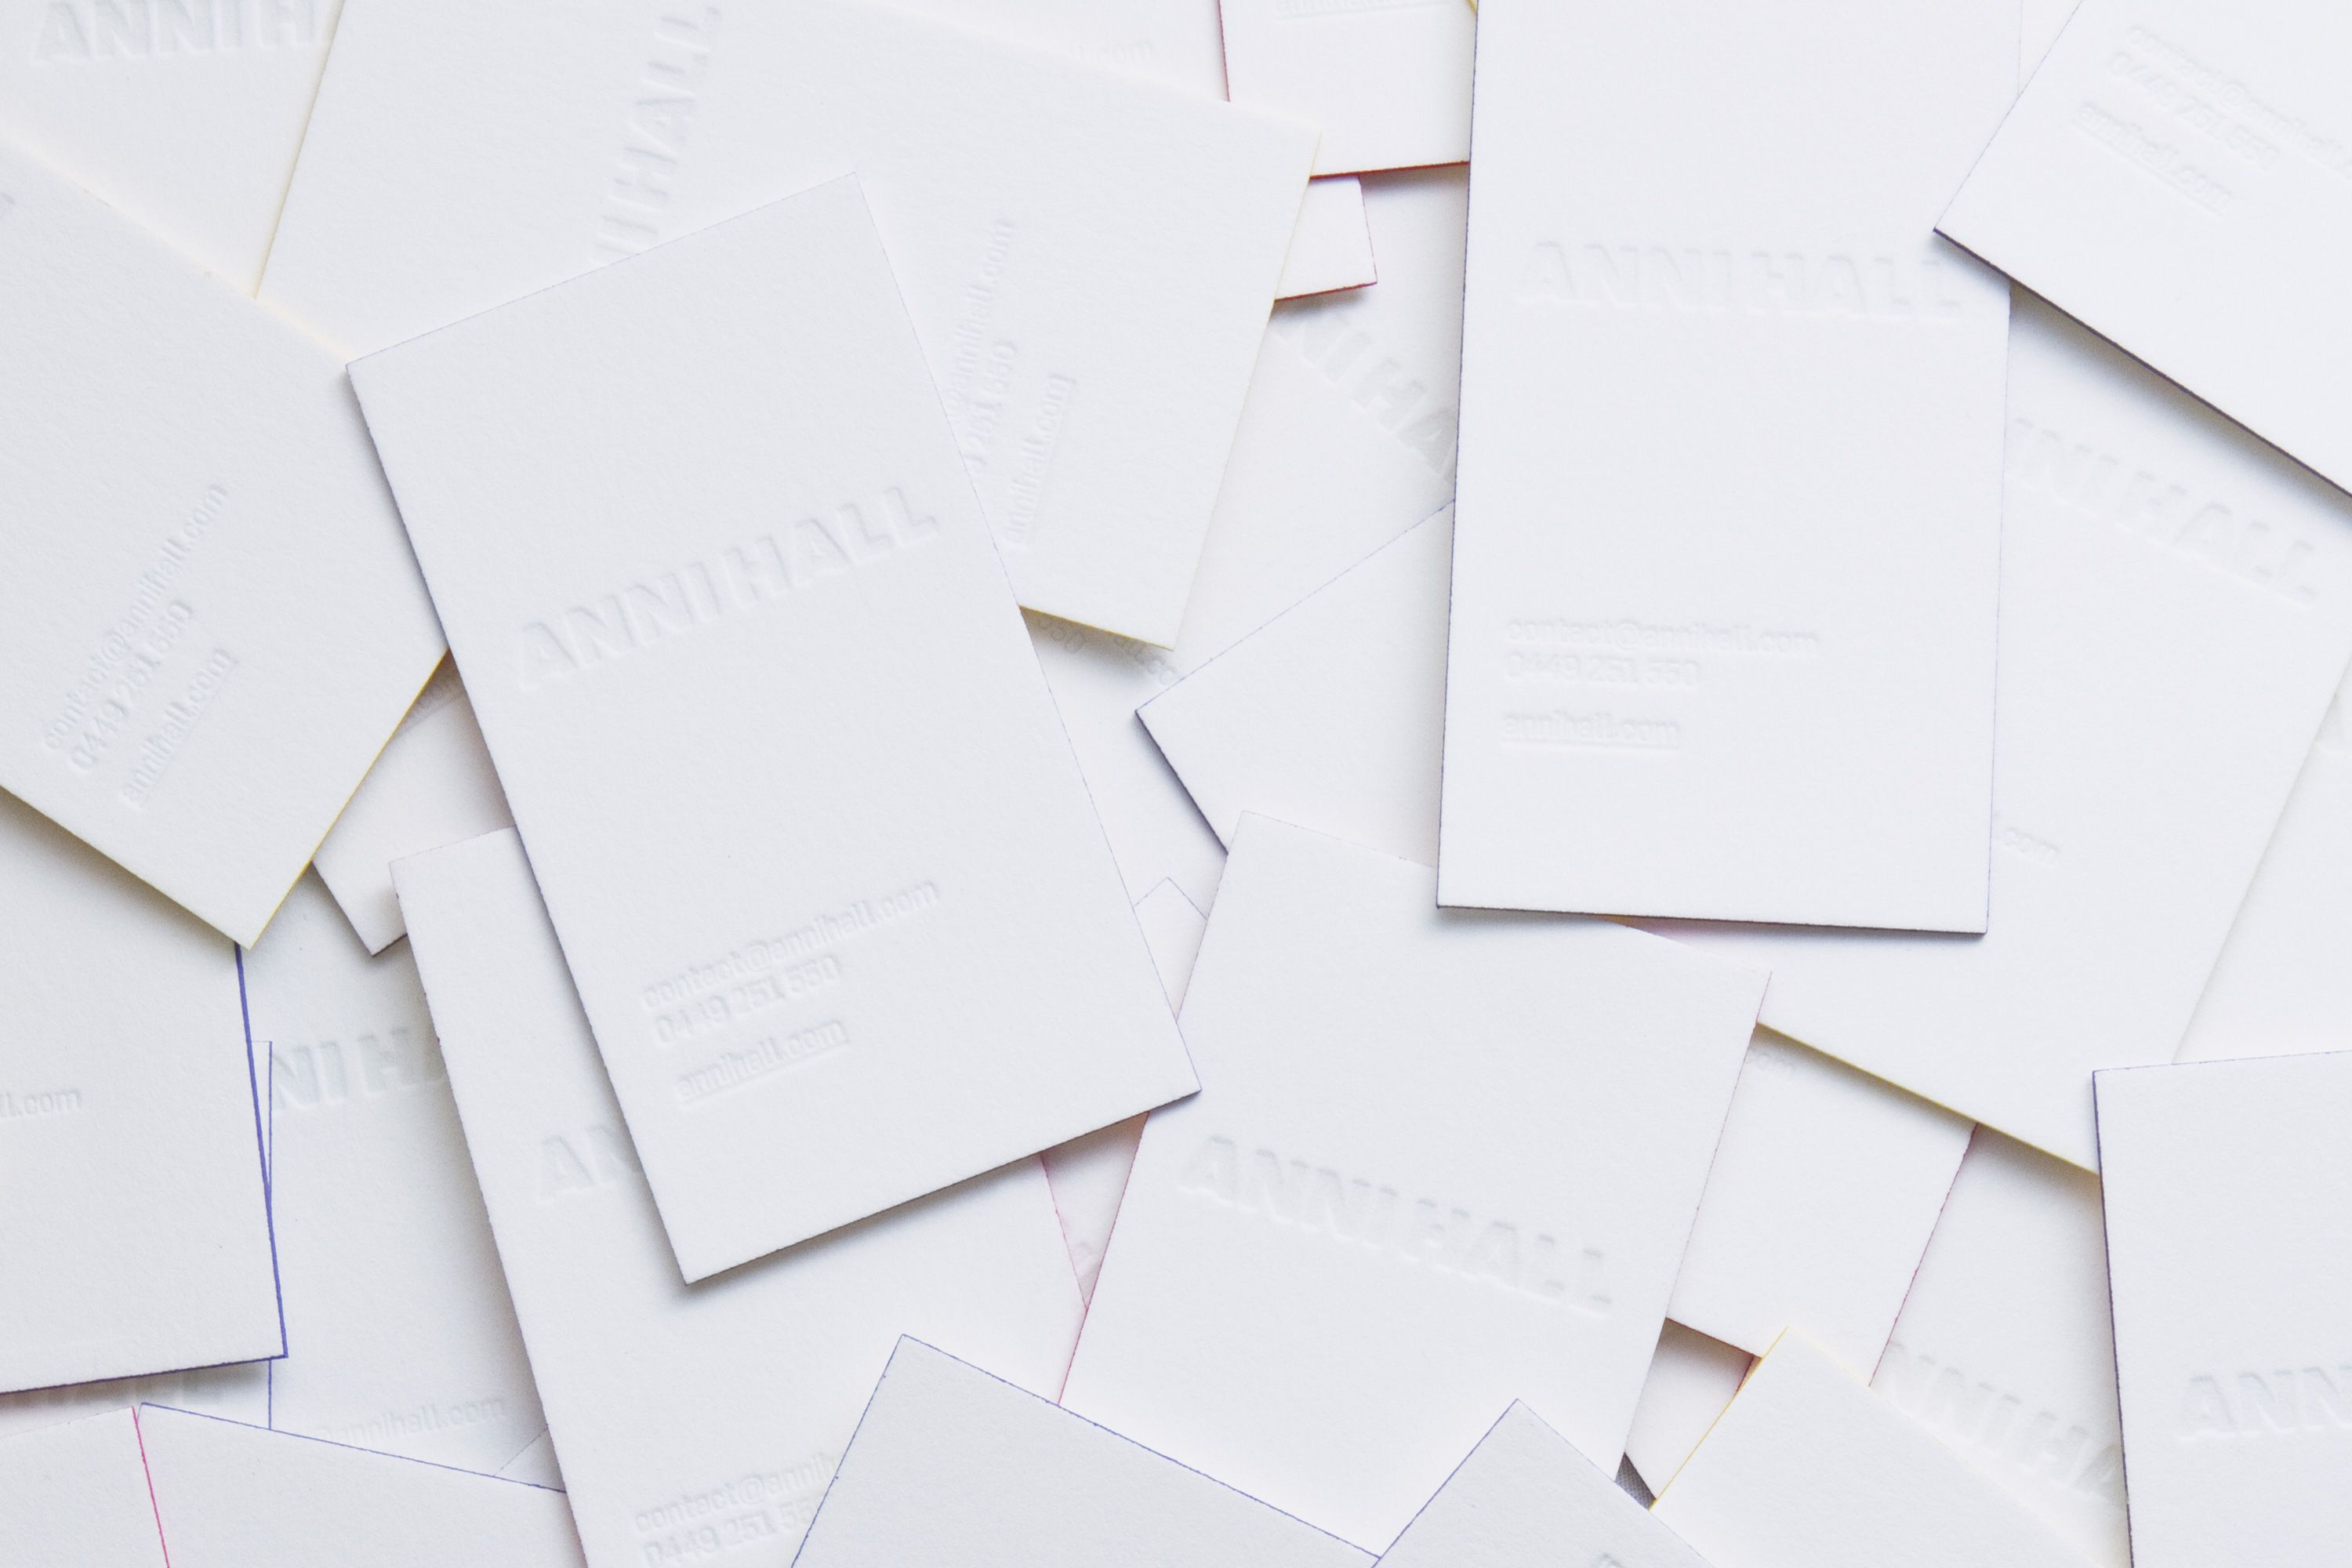 DITTMAR_anni-hall_cards_scattered